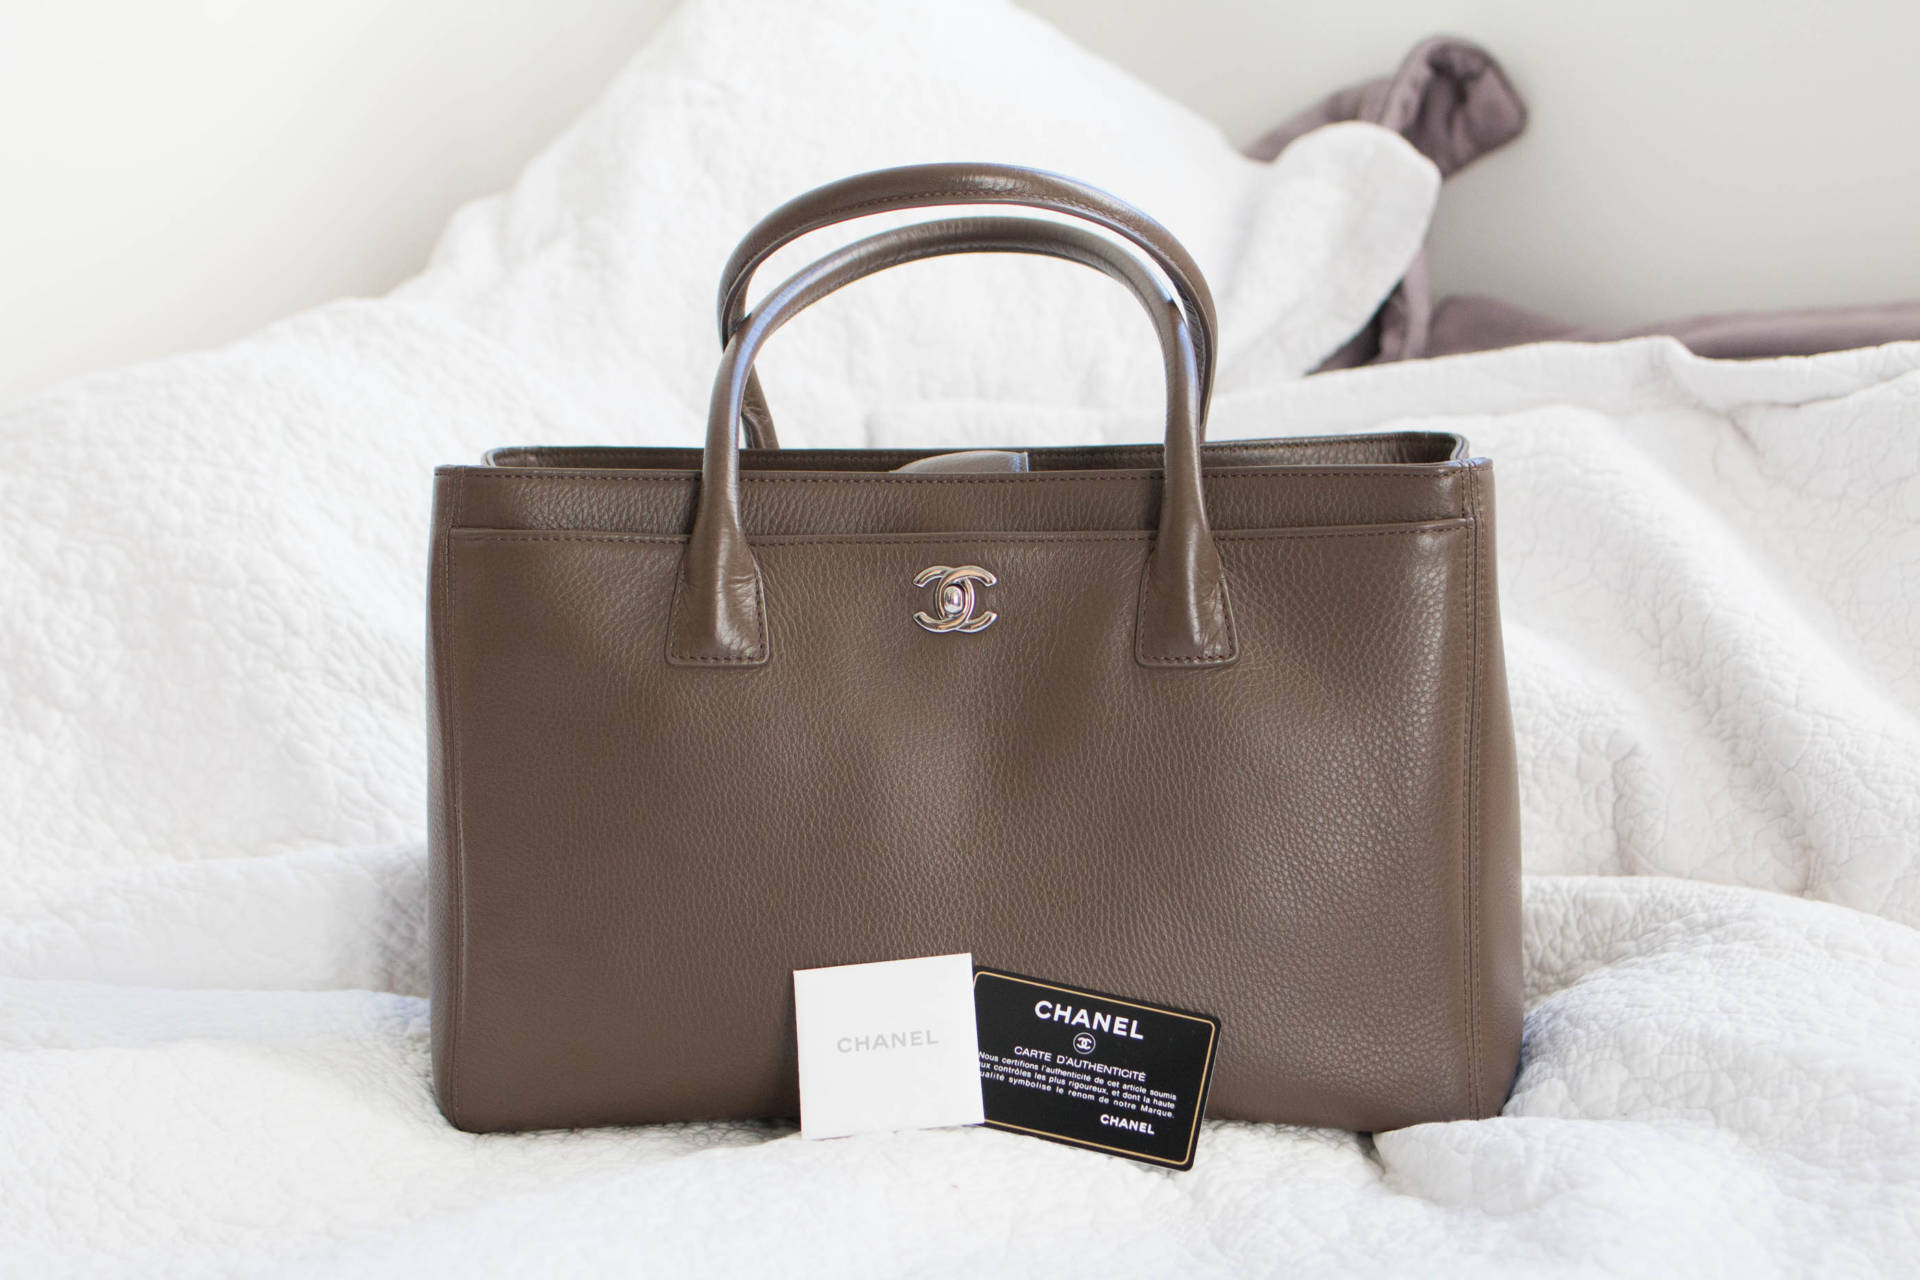 c08d06217925 Chanel Executive Cerf Tote in Taupe Silver Hardware